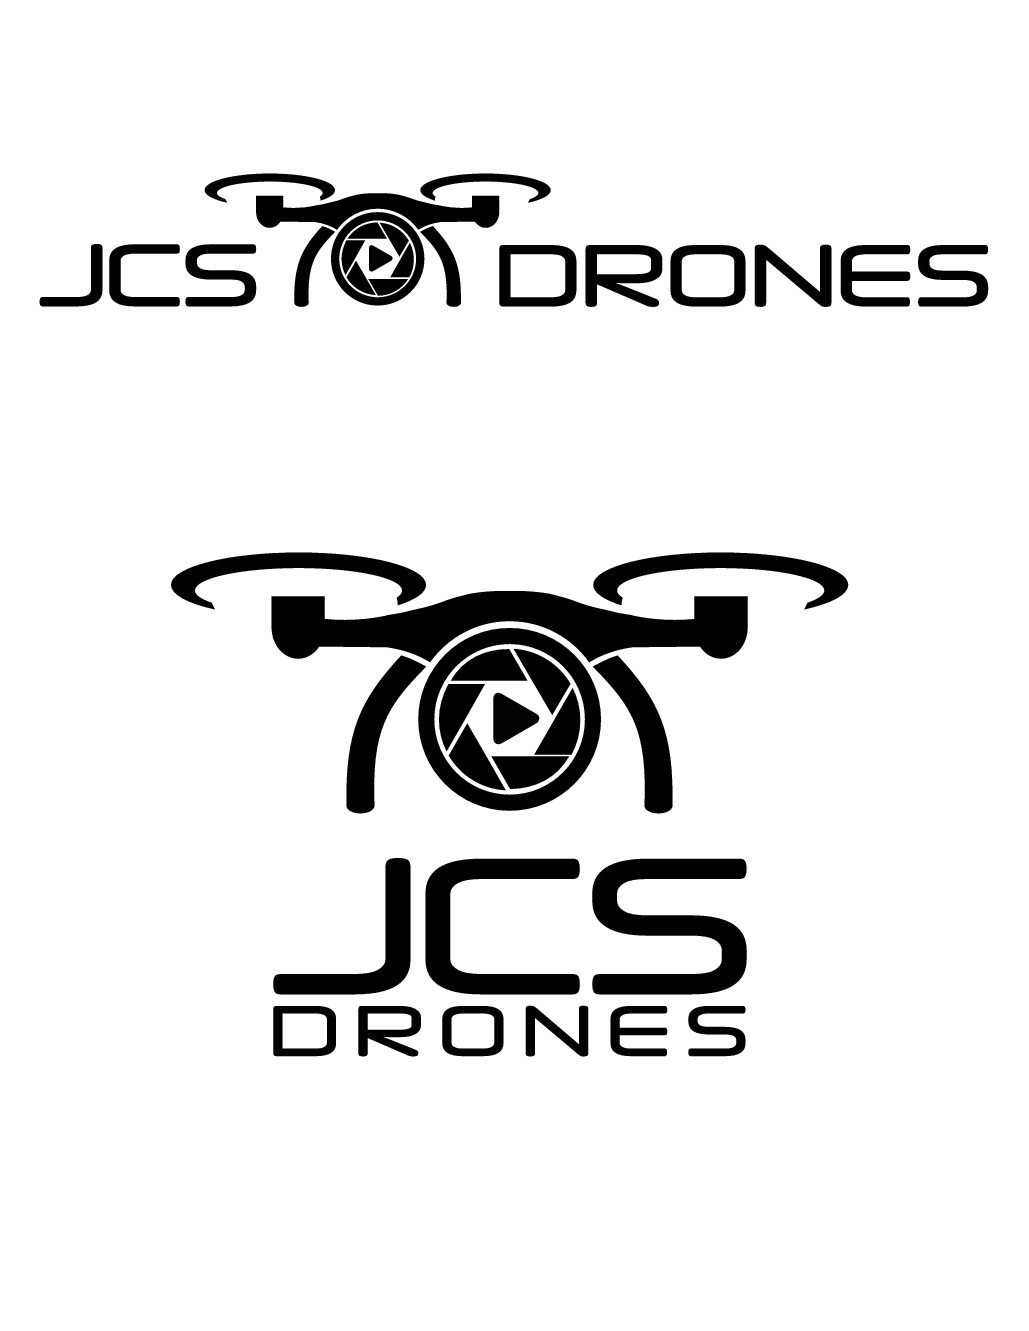 Crisp, clean, professional looking logo for high-end drone photography company